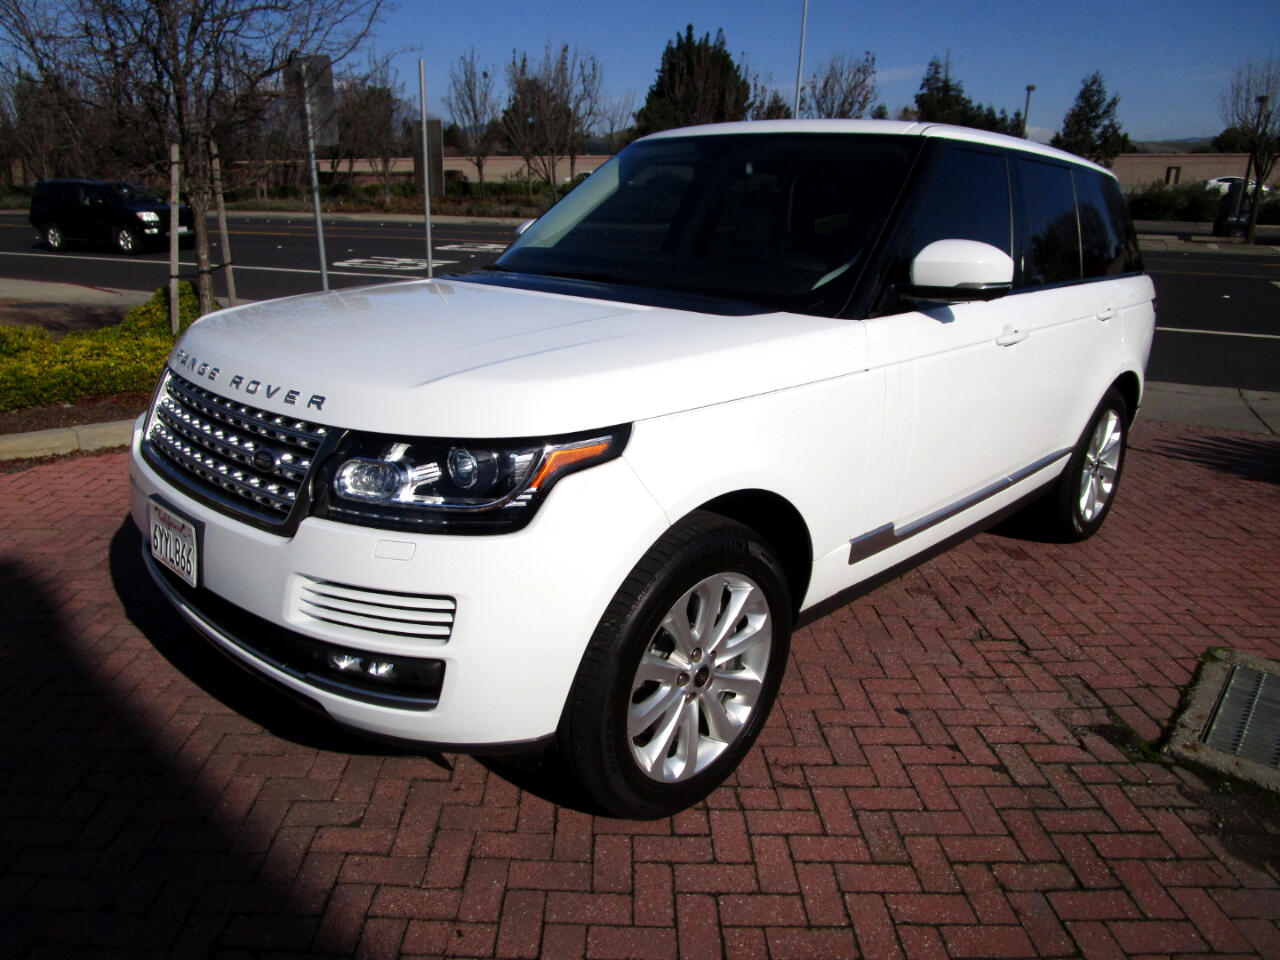 2013 Land Rover Range Rover HSE V8*DRIVER ASSIST*HEAT/AC SEATS*REAR CLMT*PANO*